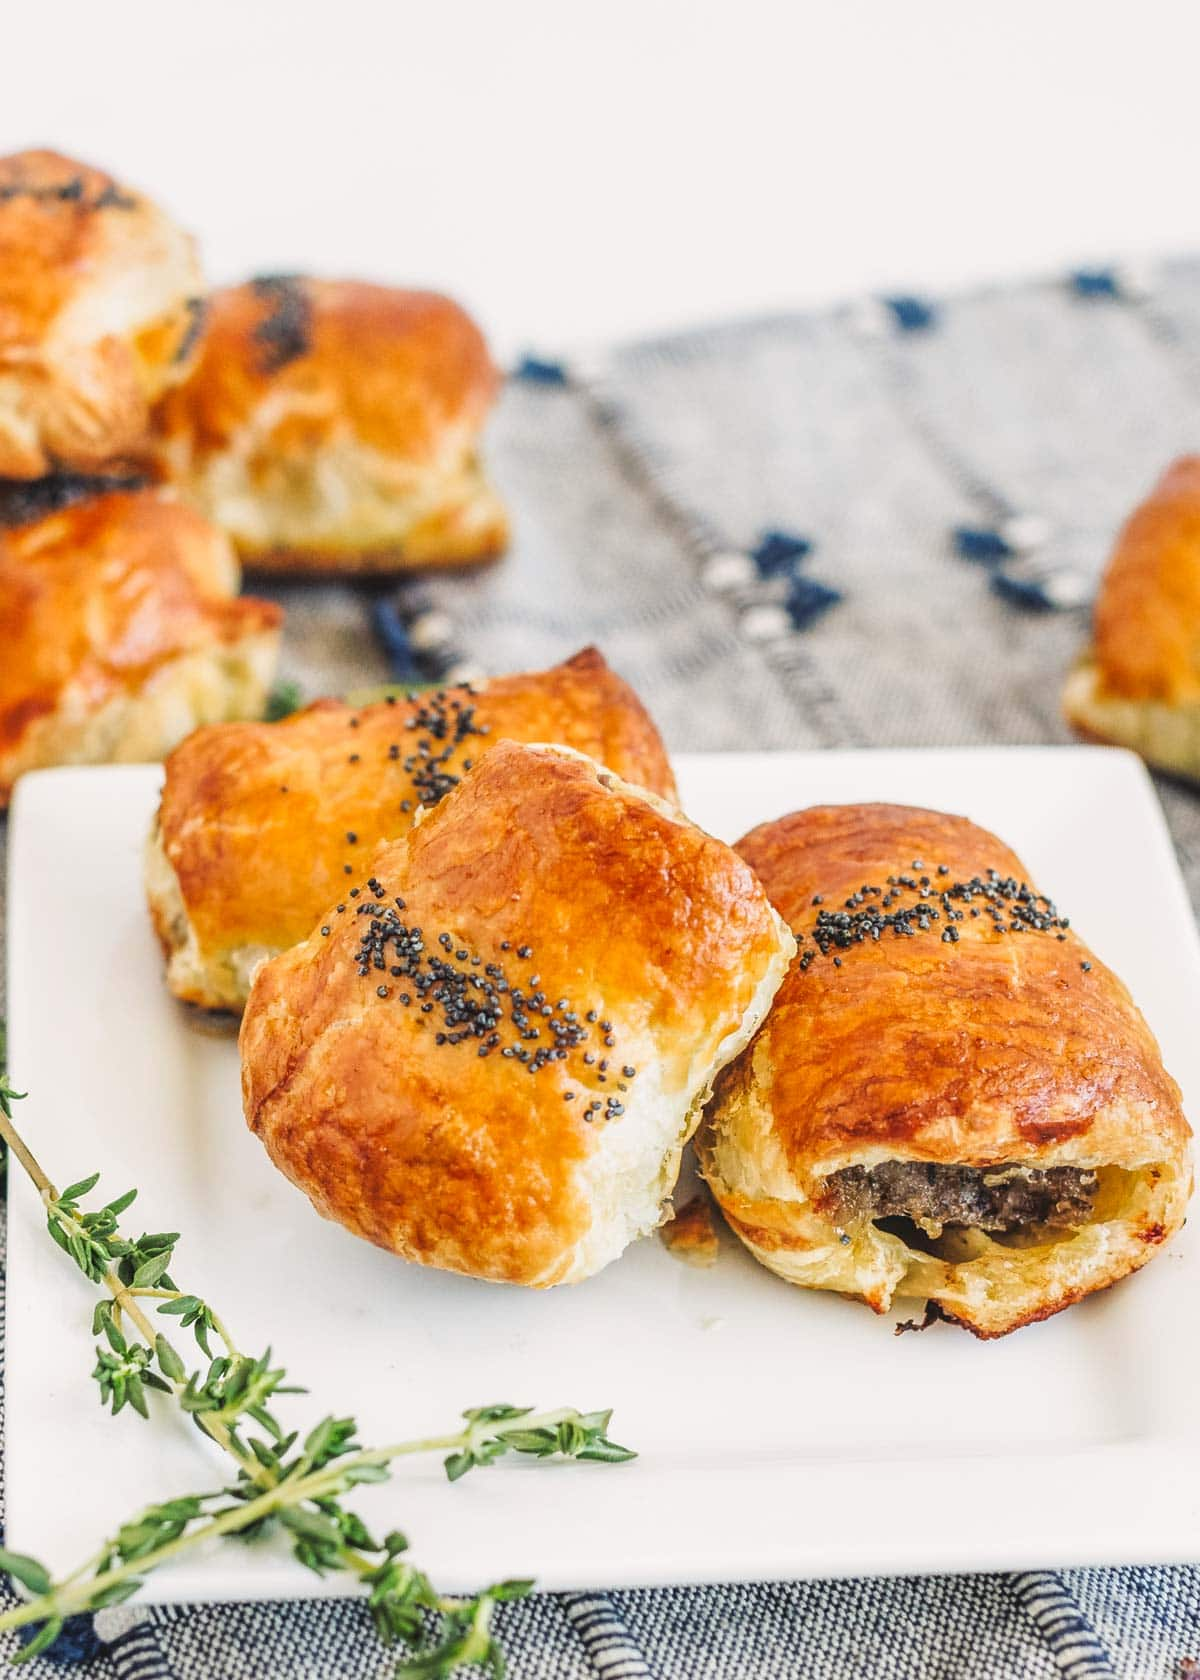 Breakfast sausage rolls stacked on a white plate